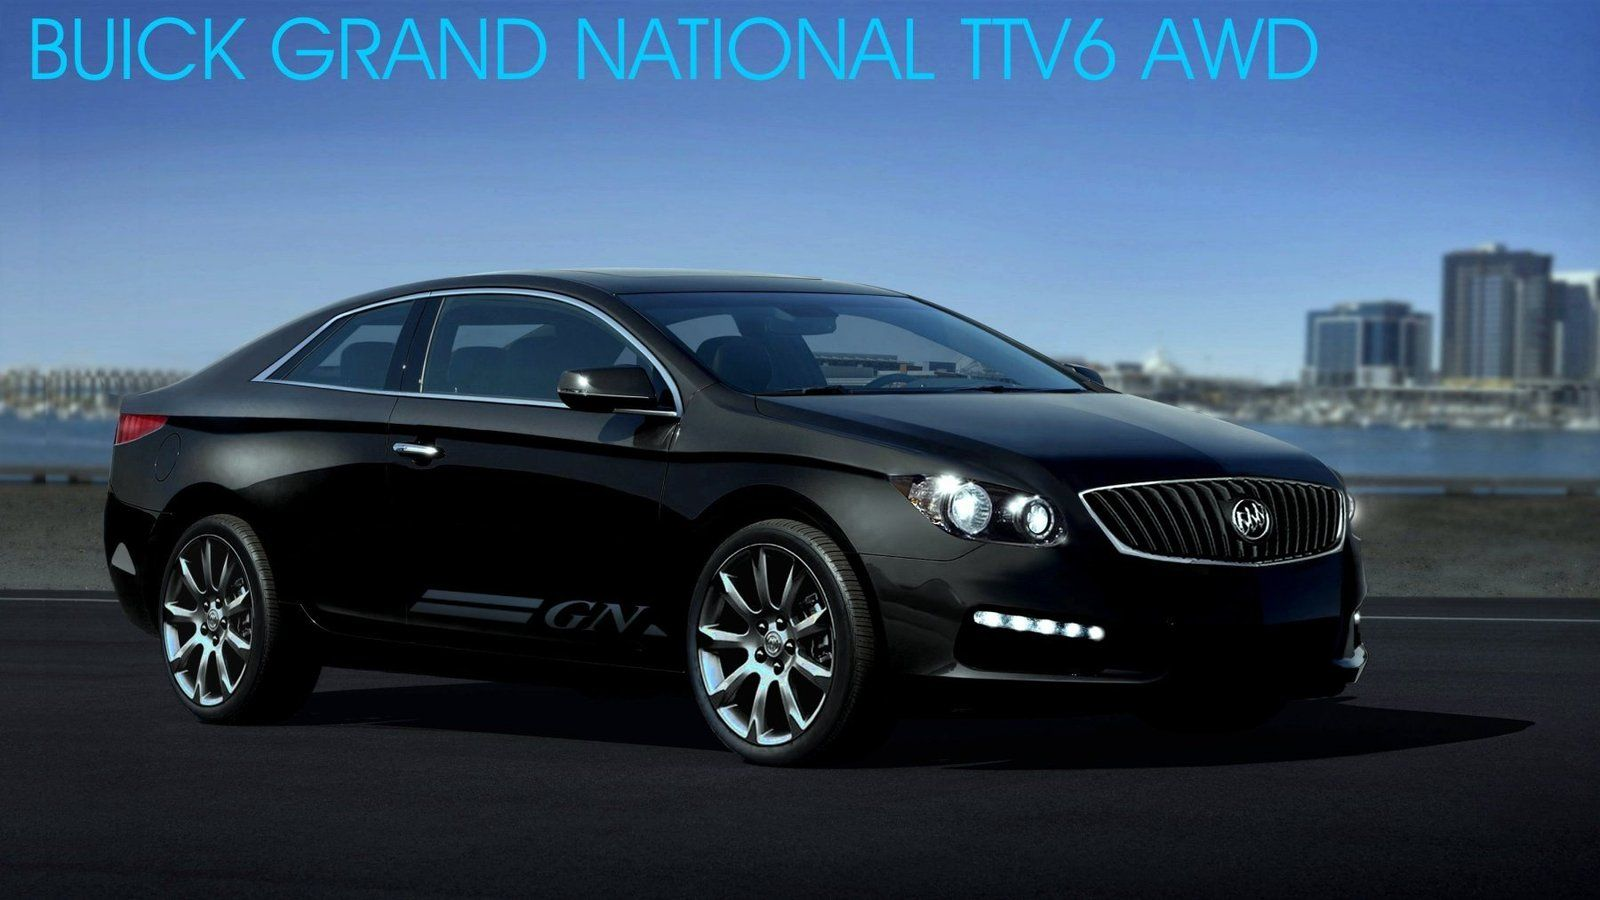 2014 buick grand national twin turbo wheels of distinction. Cars Review. Best American Auto & Cars Review